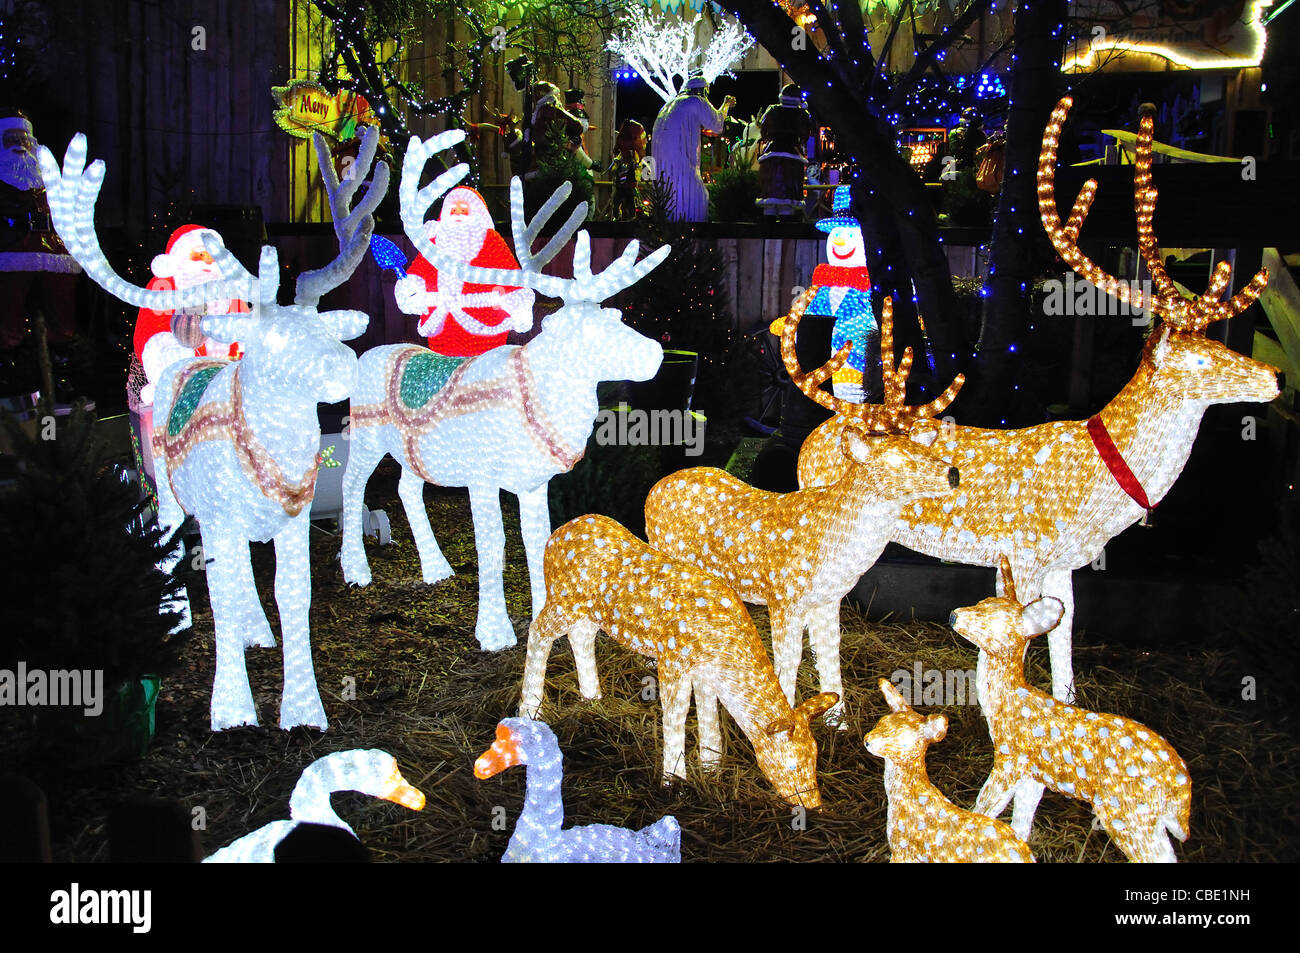 Crystal LED reindeer decorations at Christmas market, Rembrandtplein, Amsterdam, Noord-Holland, Kingdom of the Netherlands - Stock Image